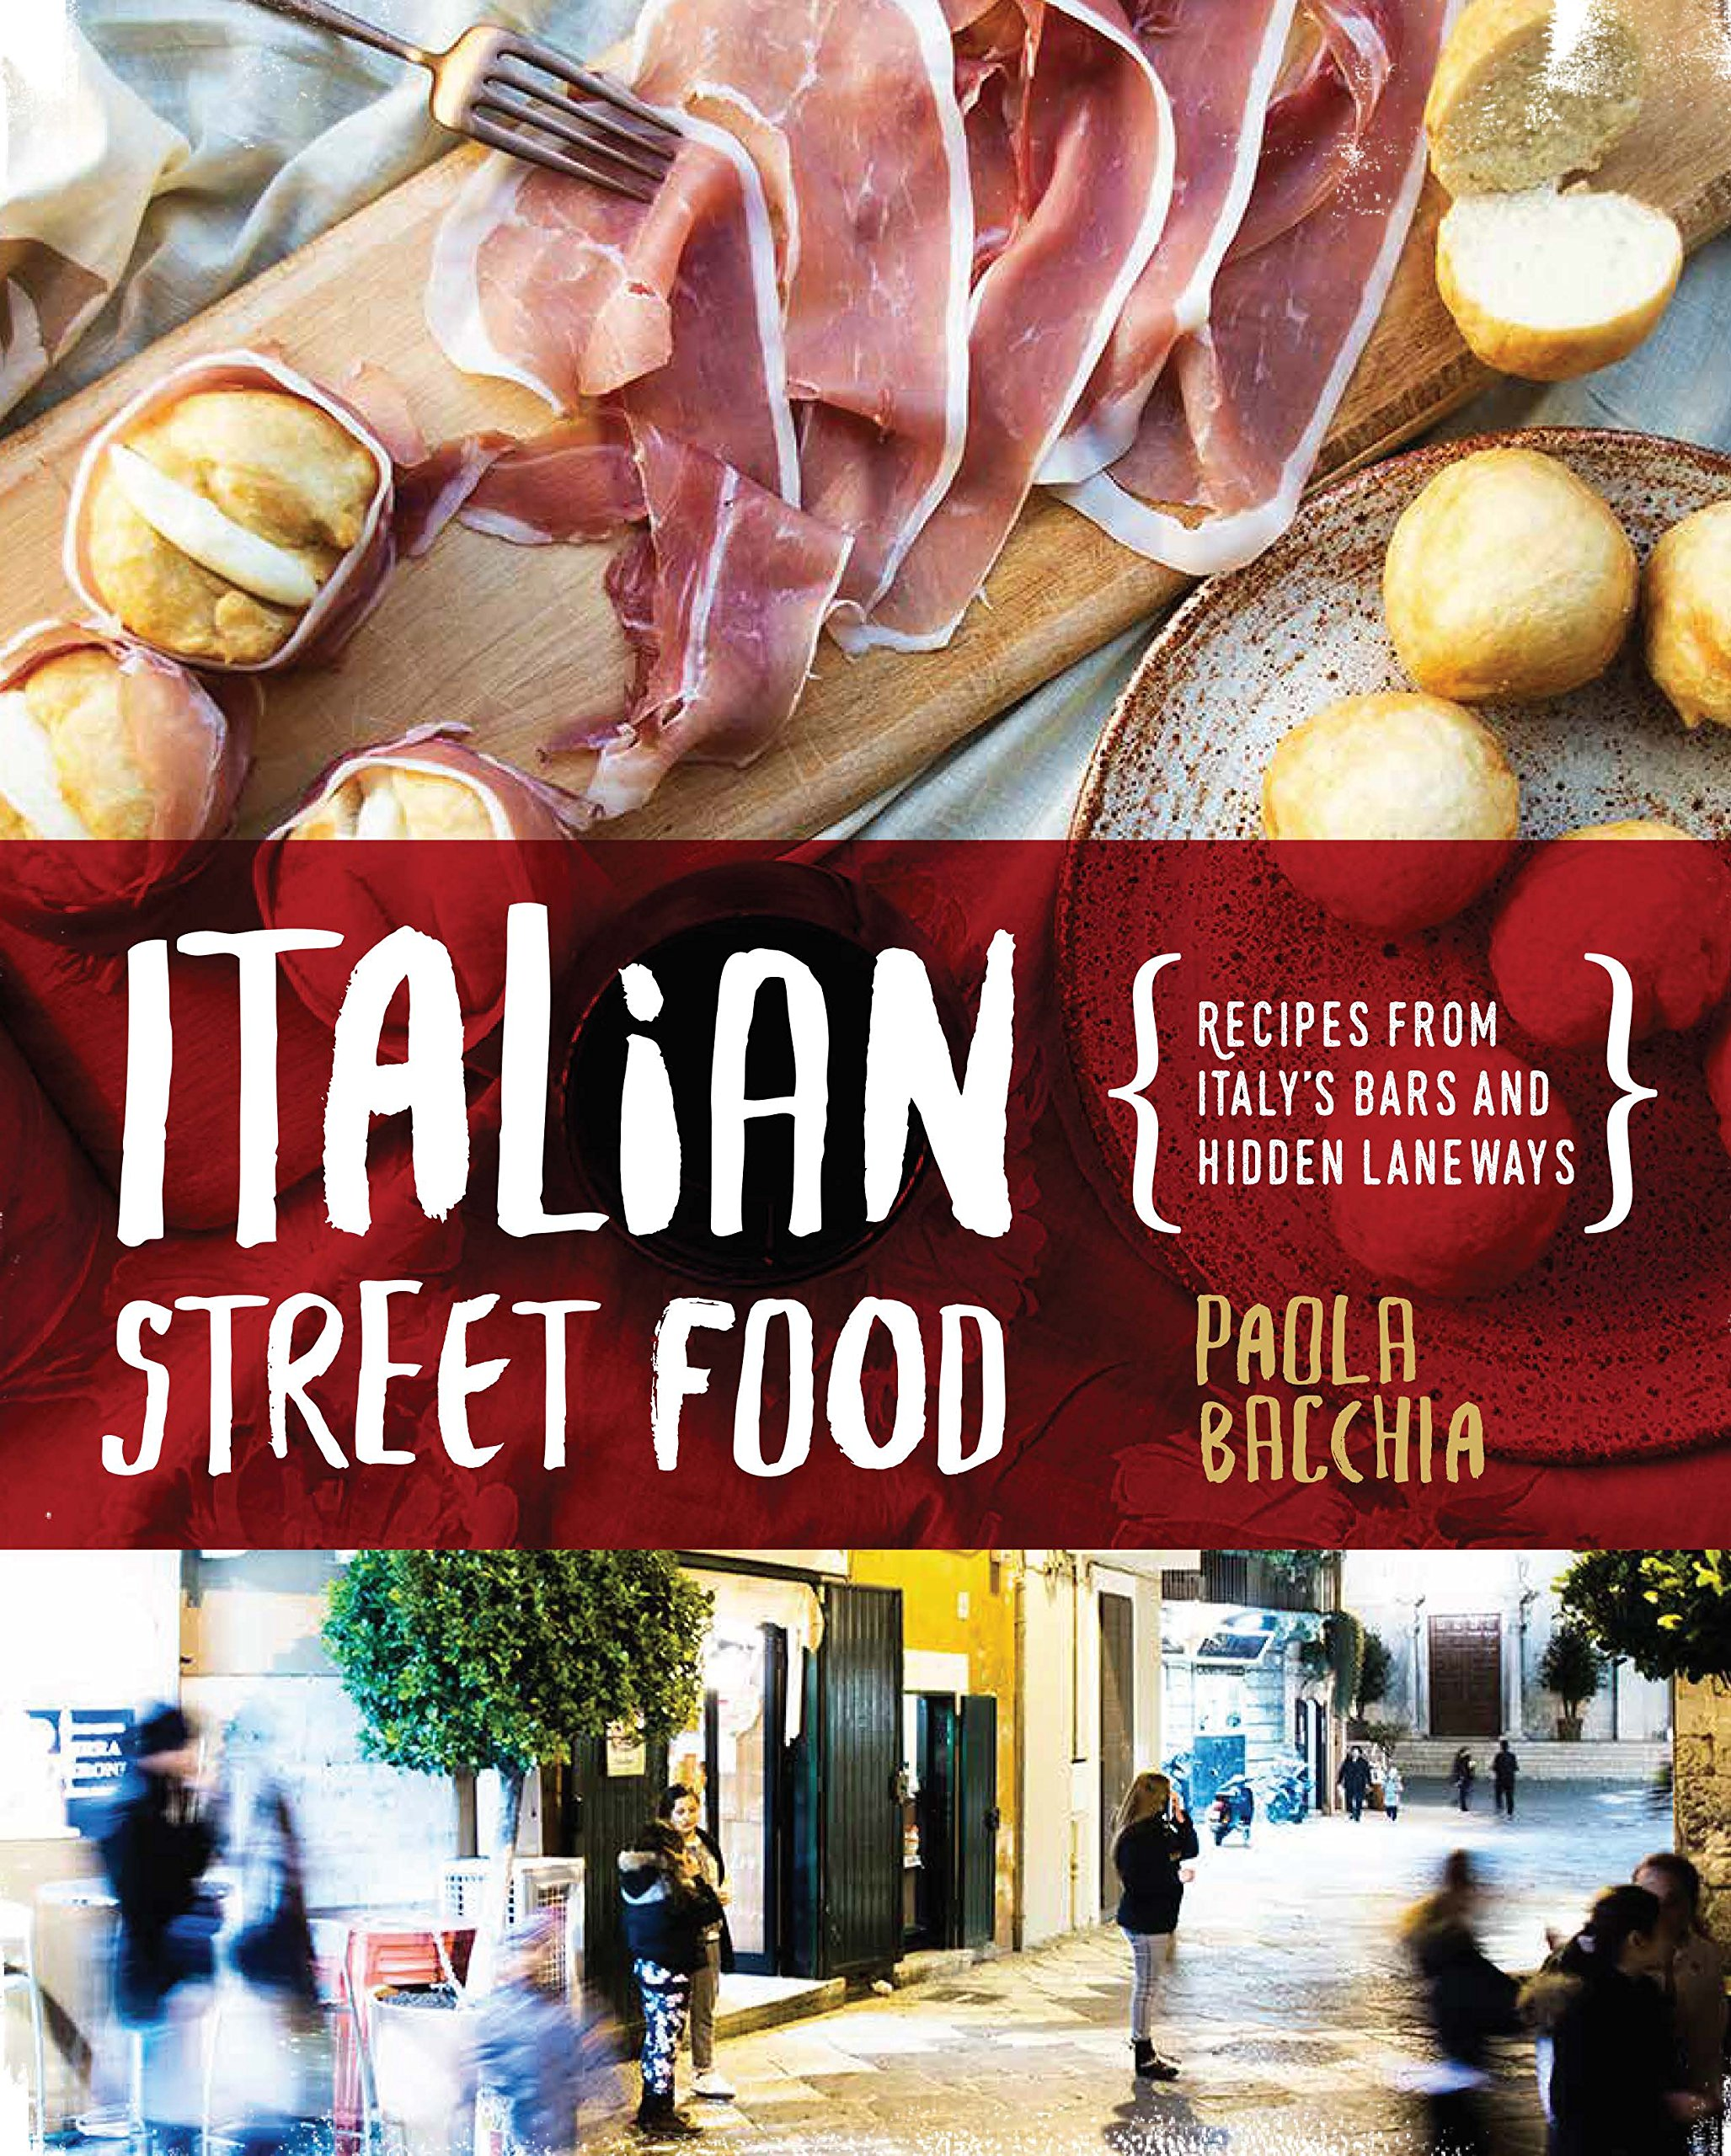 Italian street food recipes from italys bars and hidden laneways italian street food recipes from italys bars and hidden laneways paola bacchia 9781925418187 amazon books forumfinder Choice Image